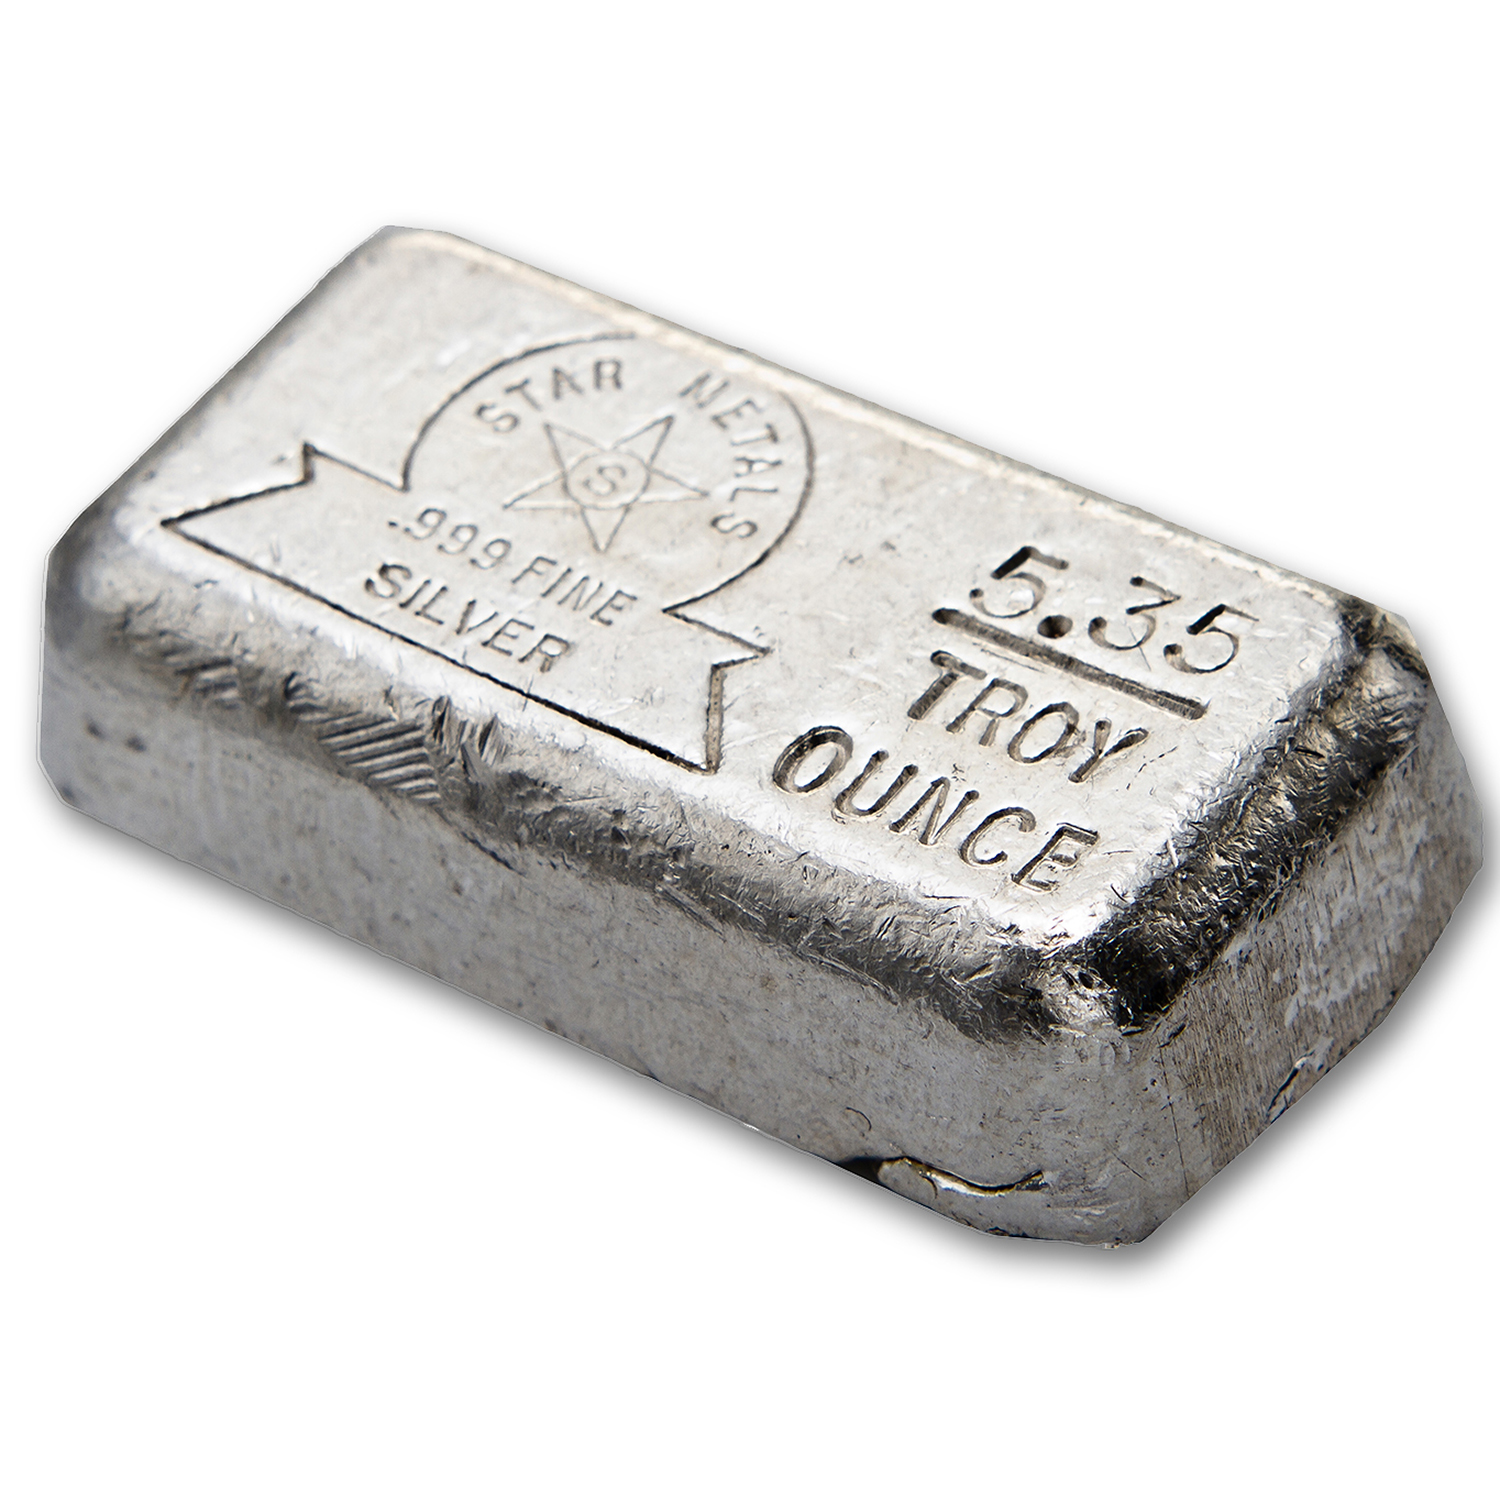 5.35 oz Silver Bars - Star Metals